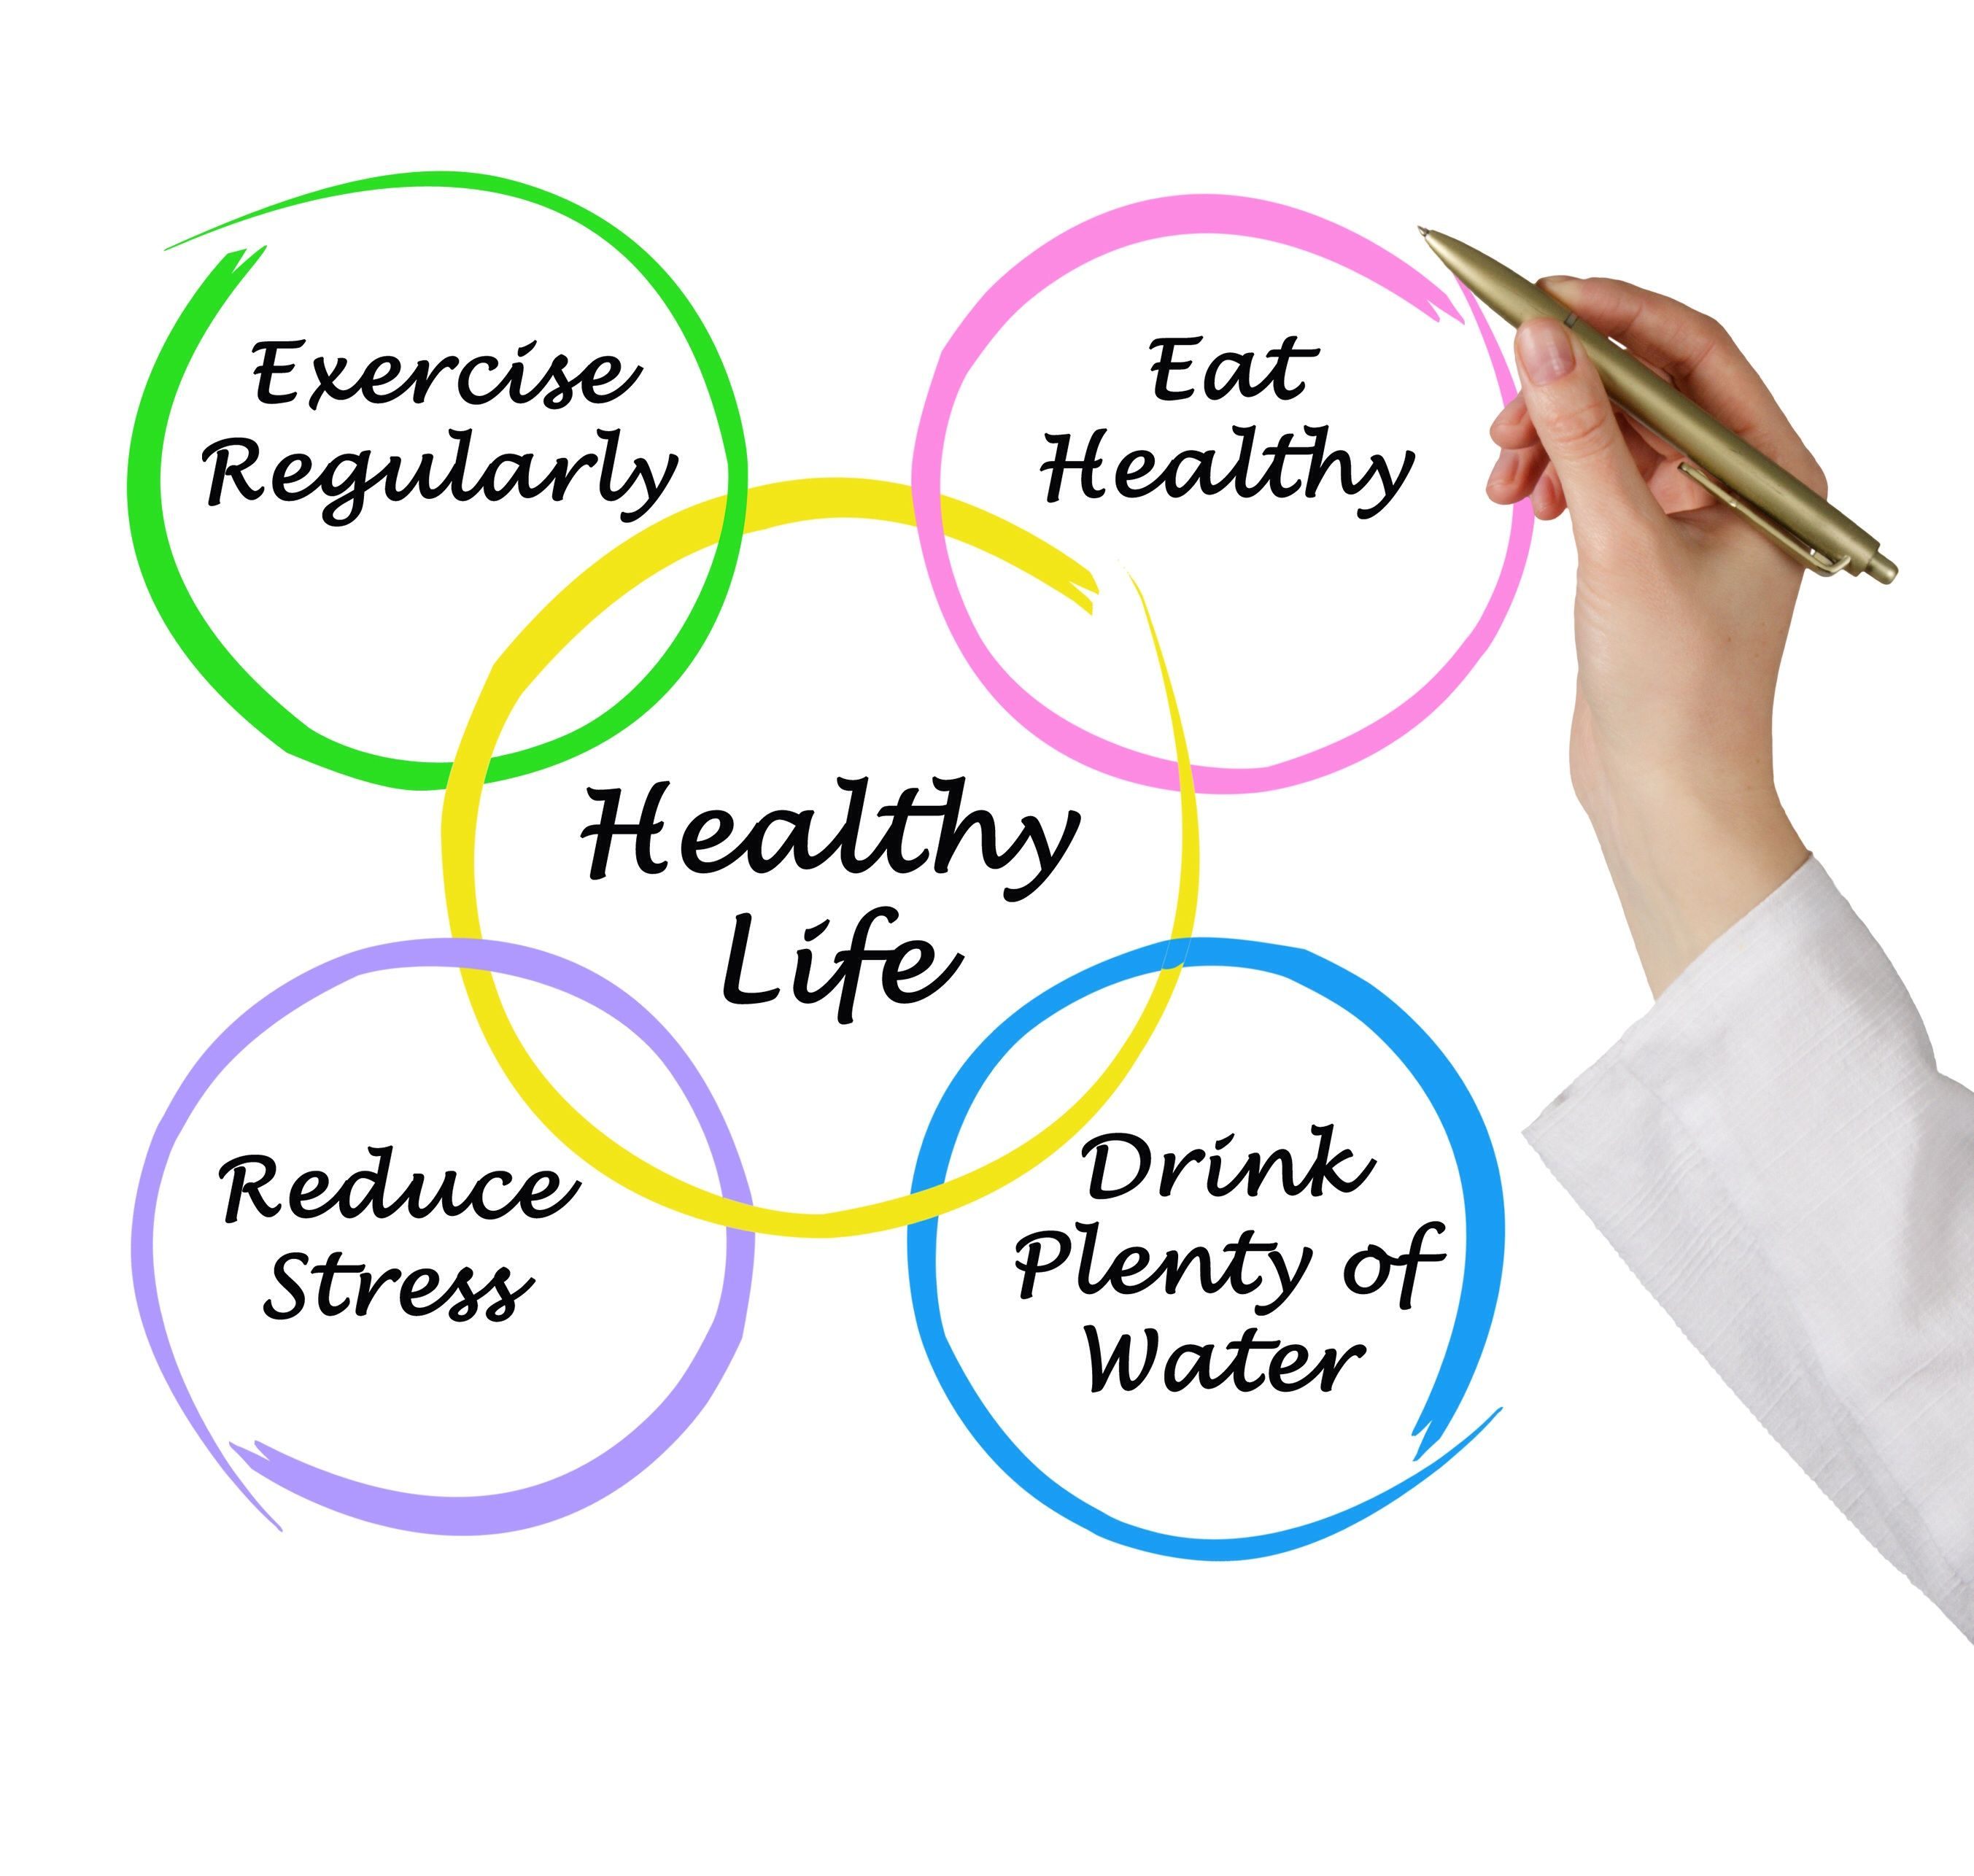 Mindmap Of Healthy Life  Healthy  Healthy Lifestyle Healthy  Mindmap Of Healthy Life